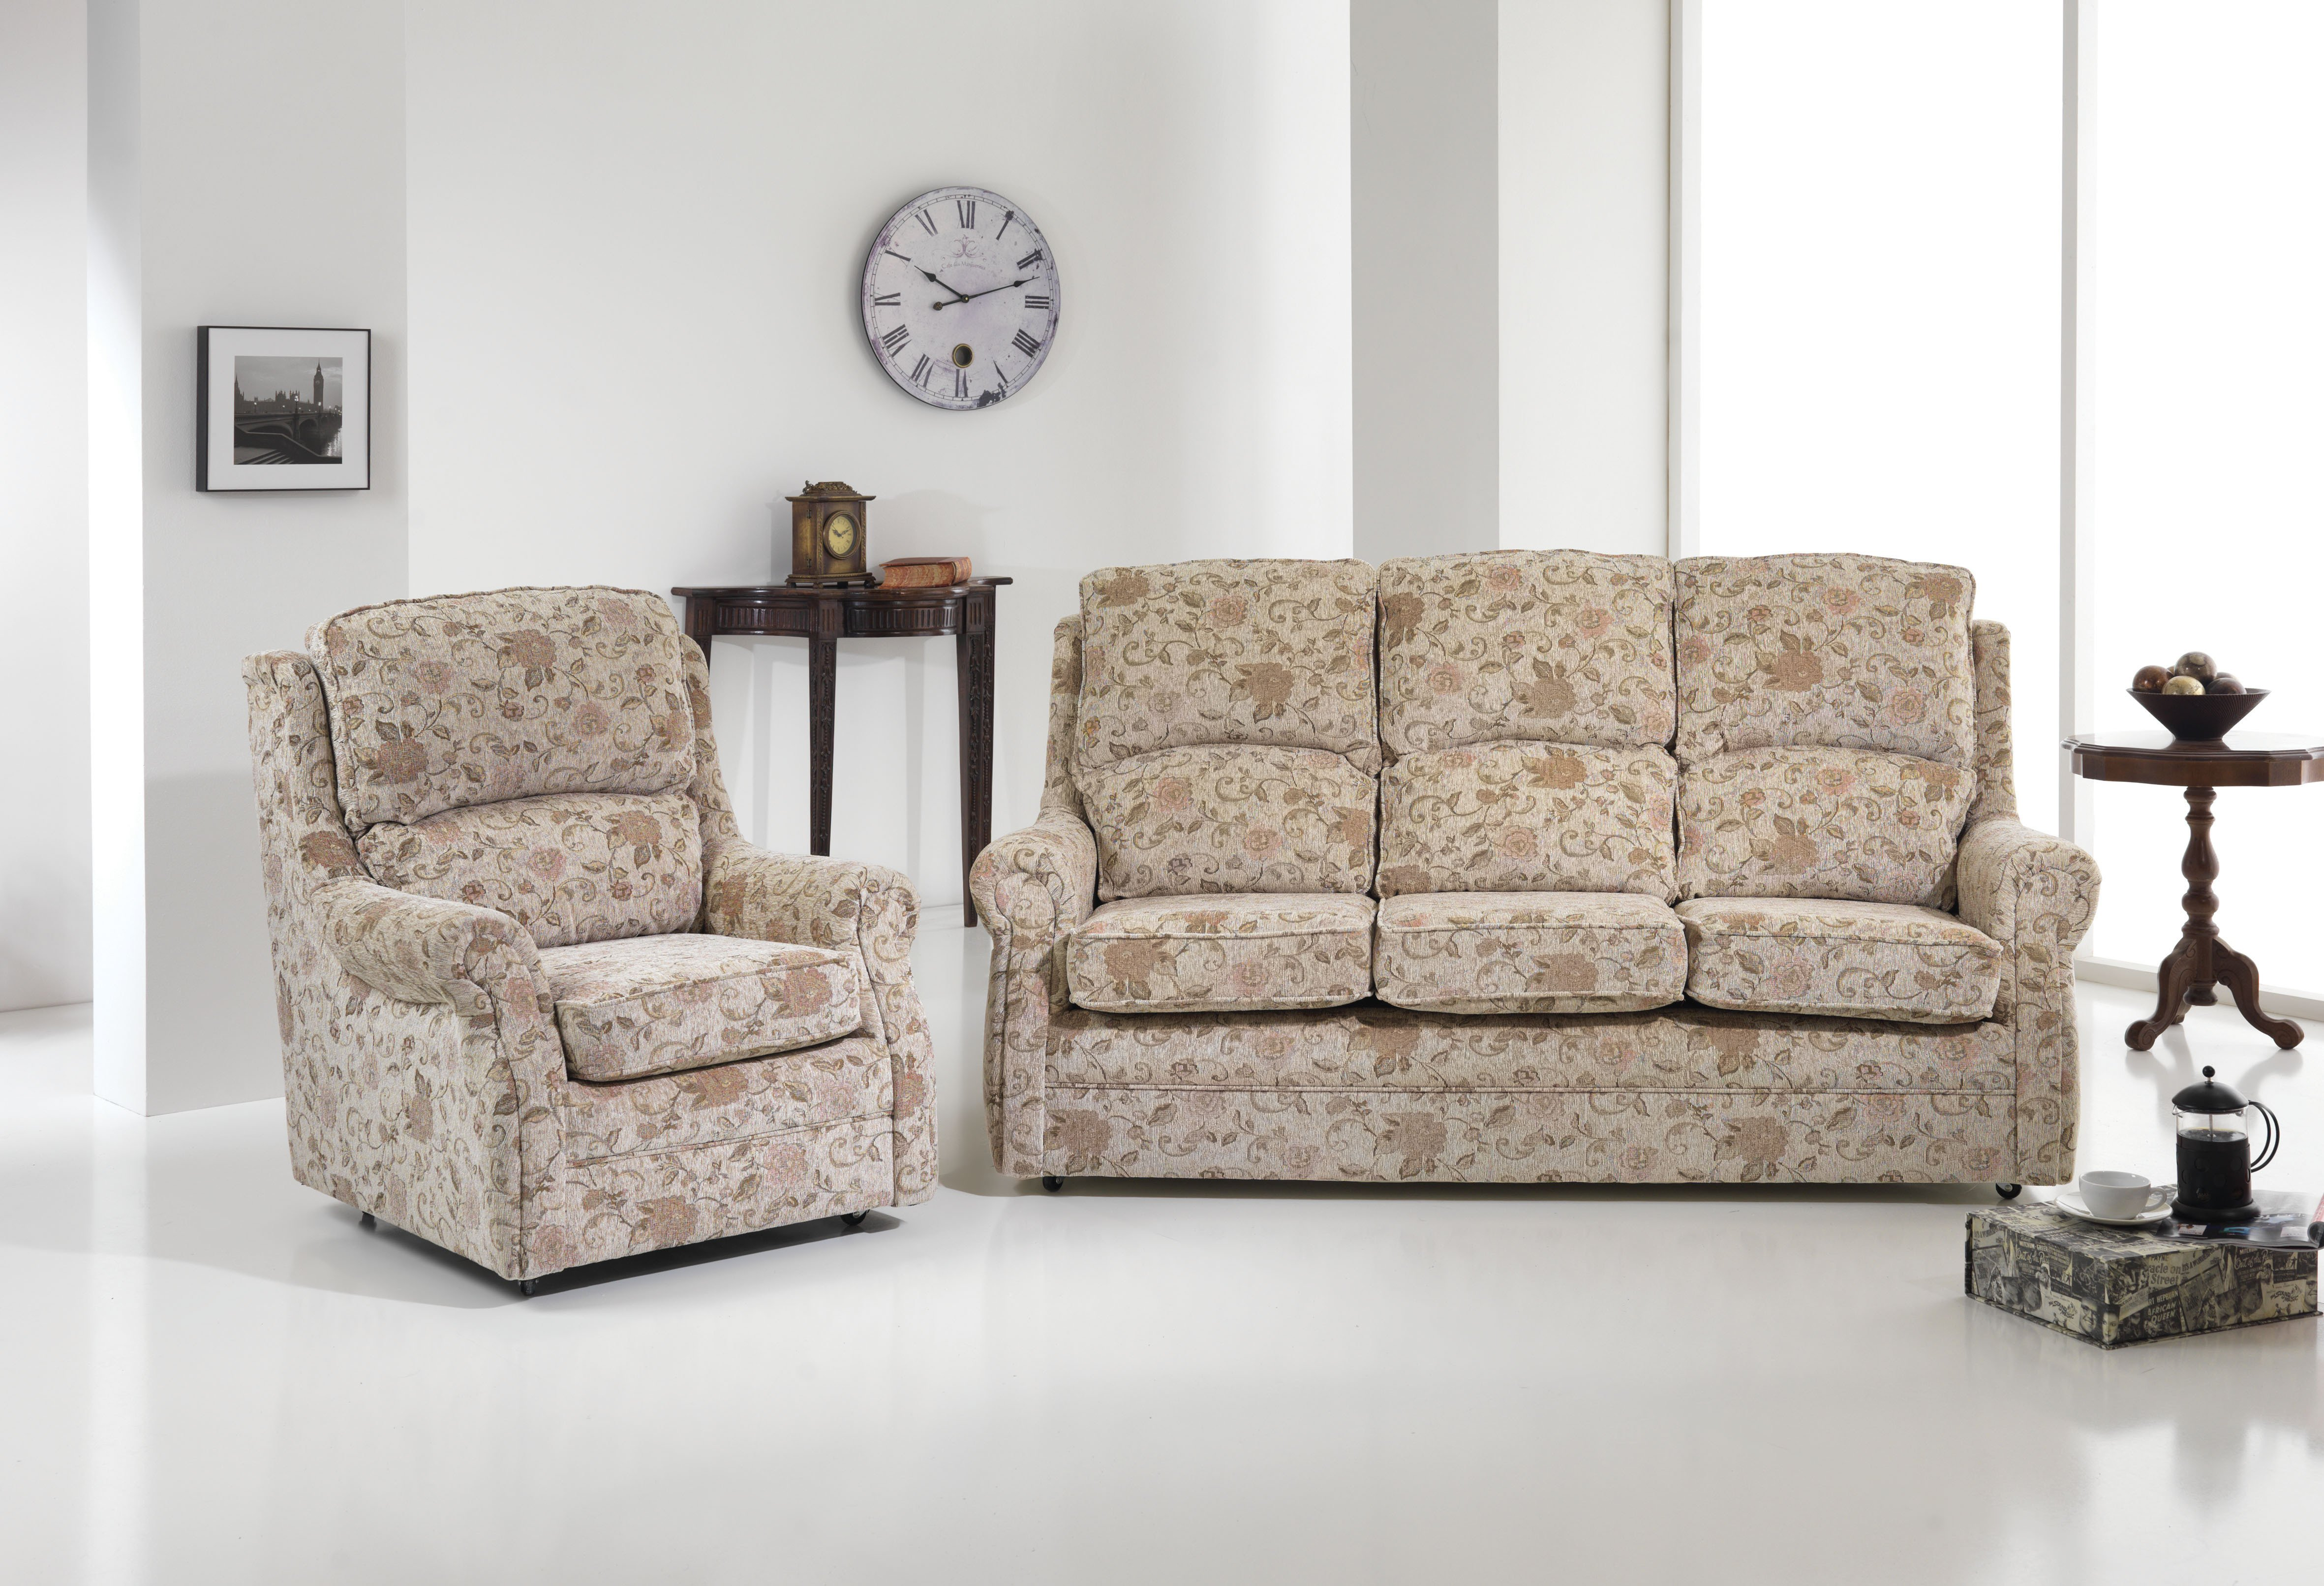 Matching Chairs For Living Room Quality Furniture Newbiggin Newbiggin Suite And Furniture Centre